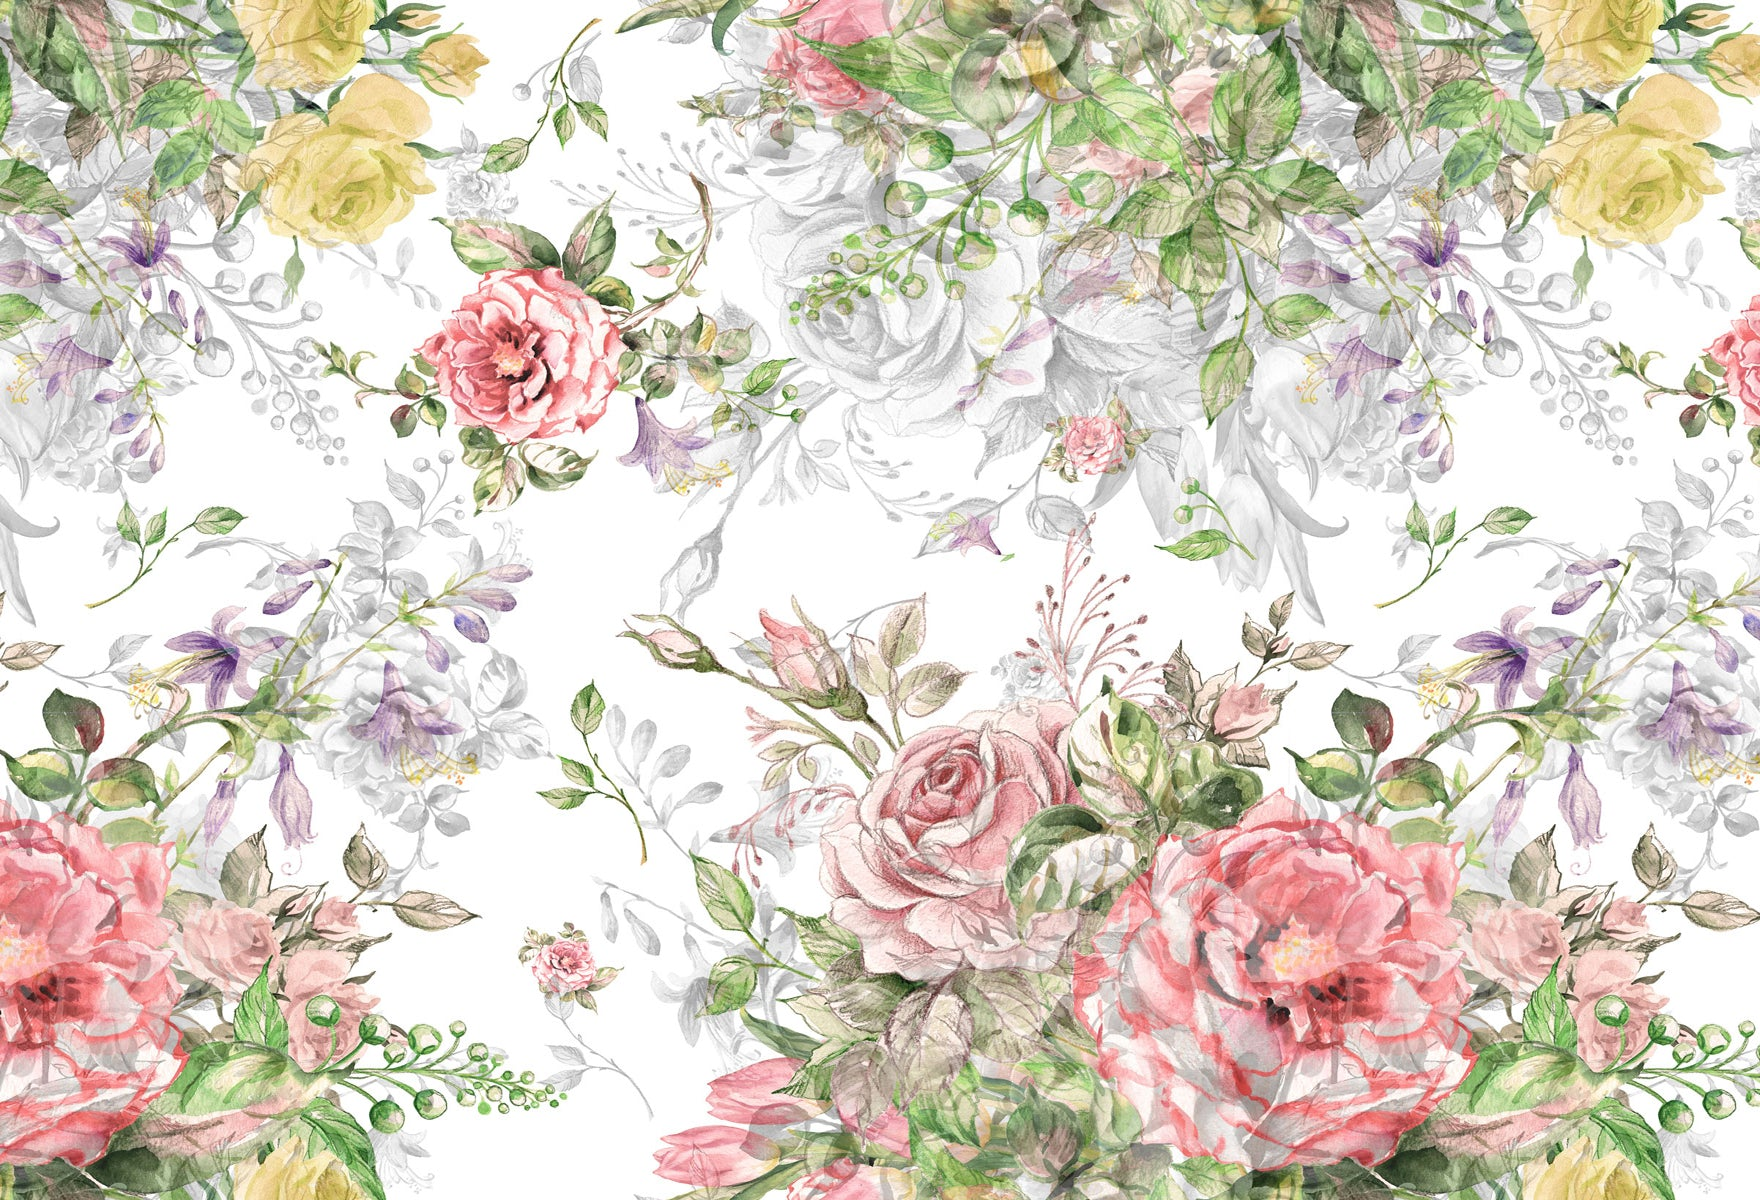 Fox Bright Flowers White Background Vinyl Backdrop-Foxbackdrop